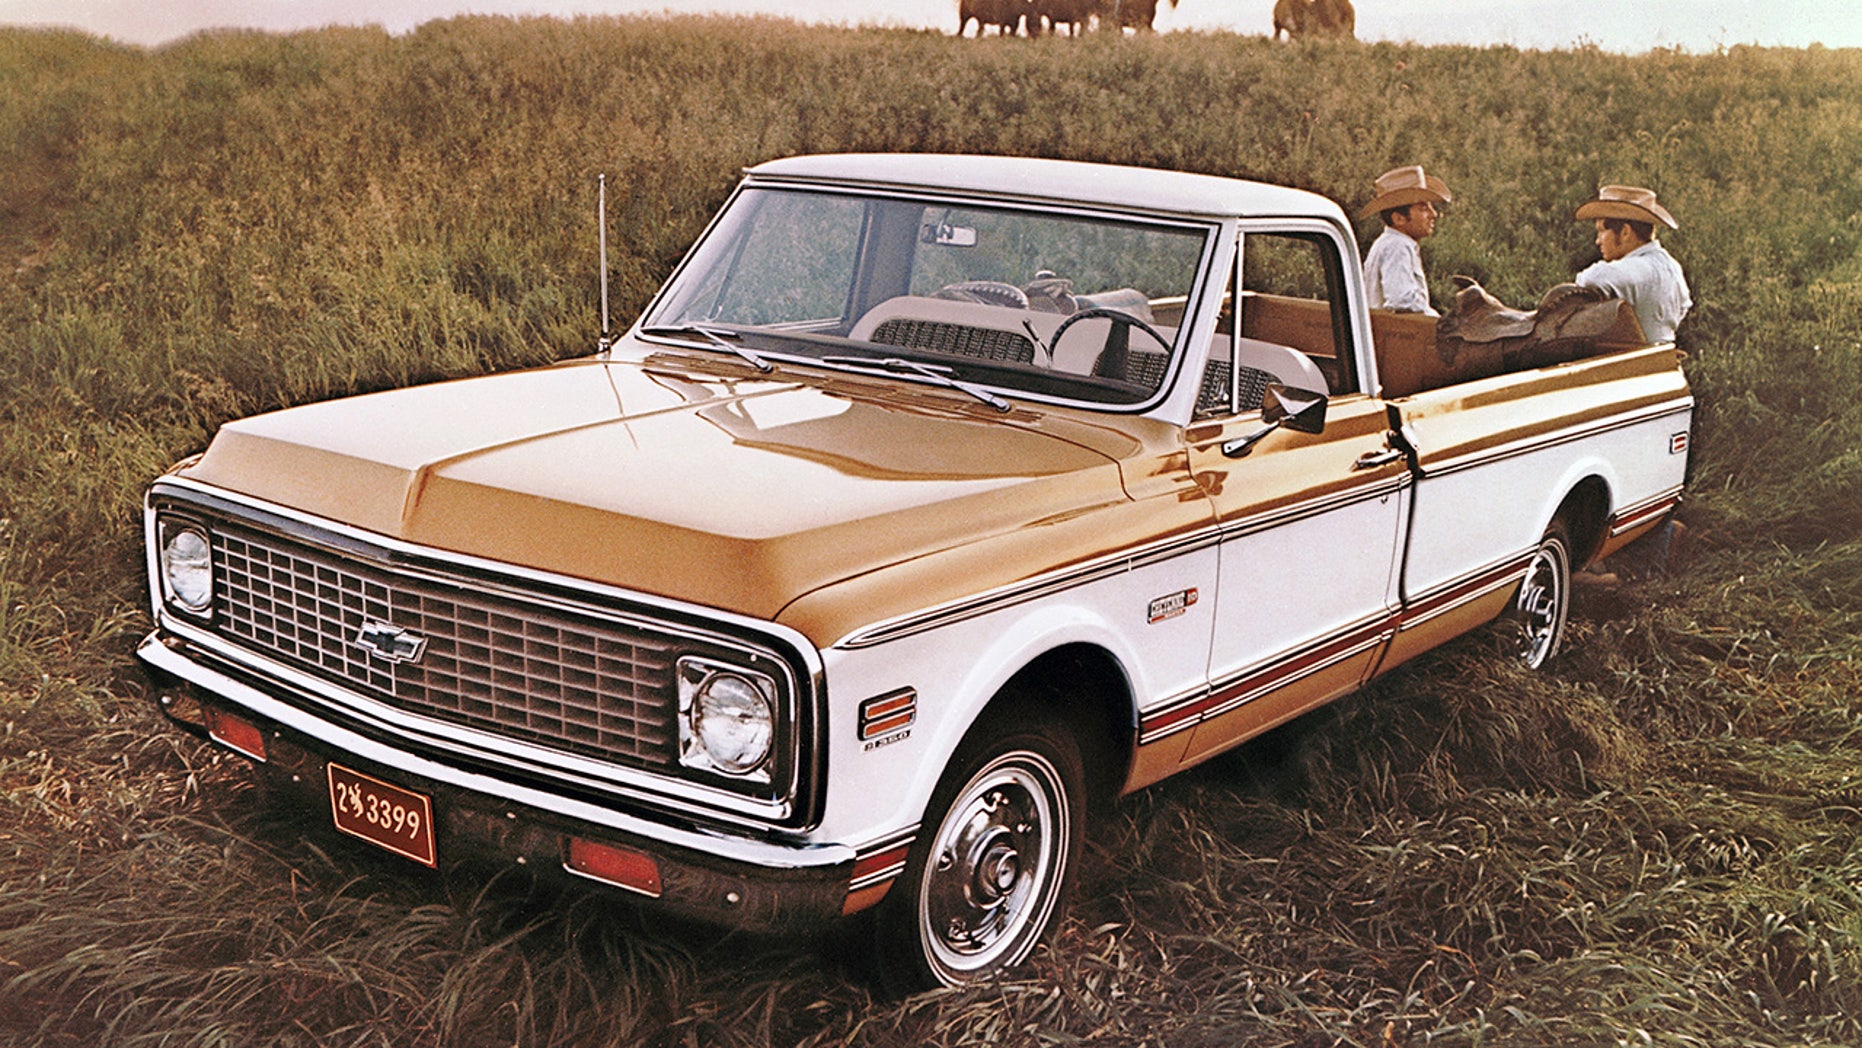 Trademark filing suggests Chevy could be bringing back Cheyenne